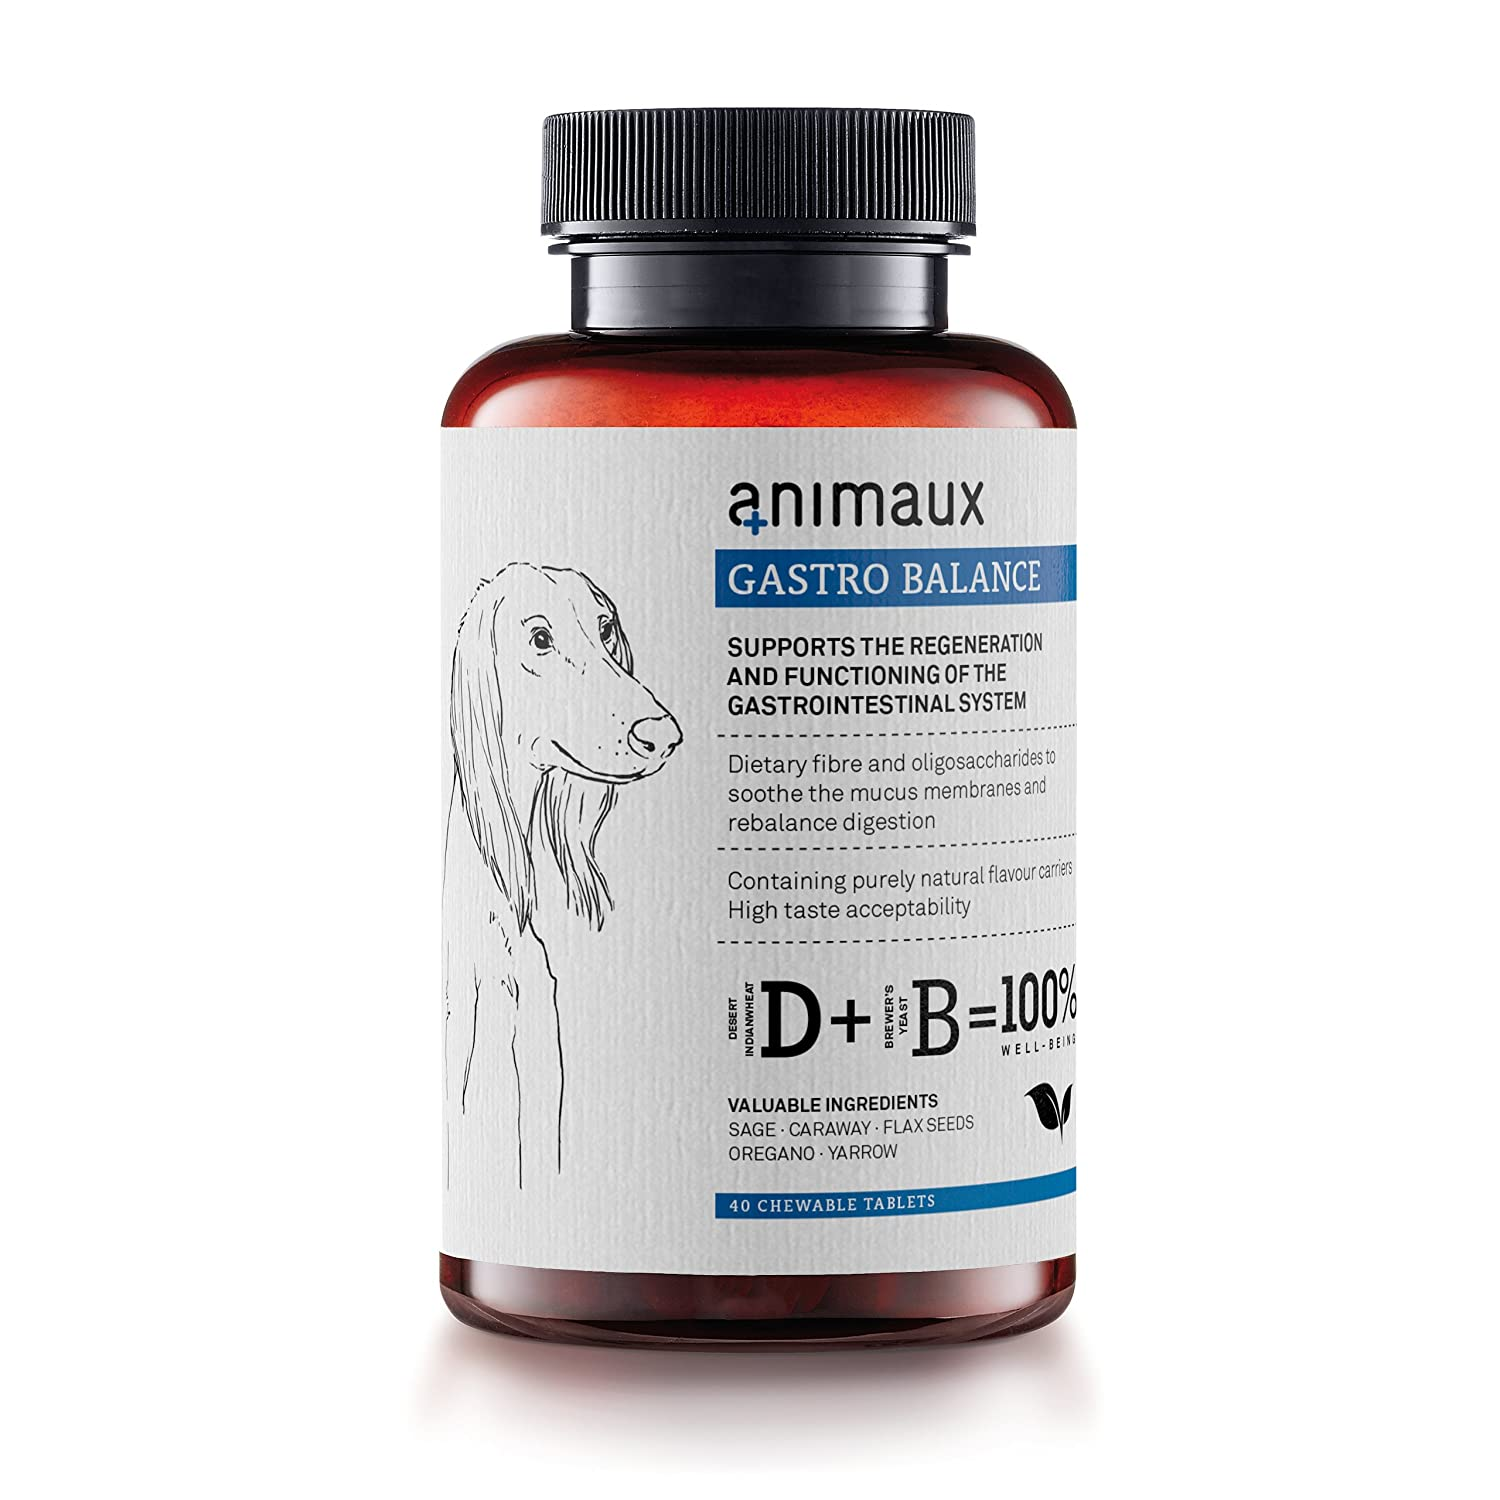 low-cost animaux – gastro balance for dogs | Digestive Health Support and Probiotics | Brewer's Yeast, Psyllium Husks, Fennel | Helps to Relieve Diarrhea, Excess Winds, Irritable Bowel | 40 Chewable Tablets